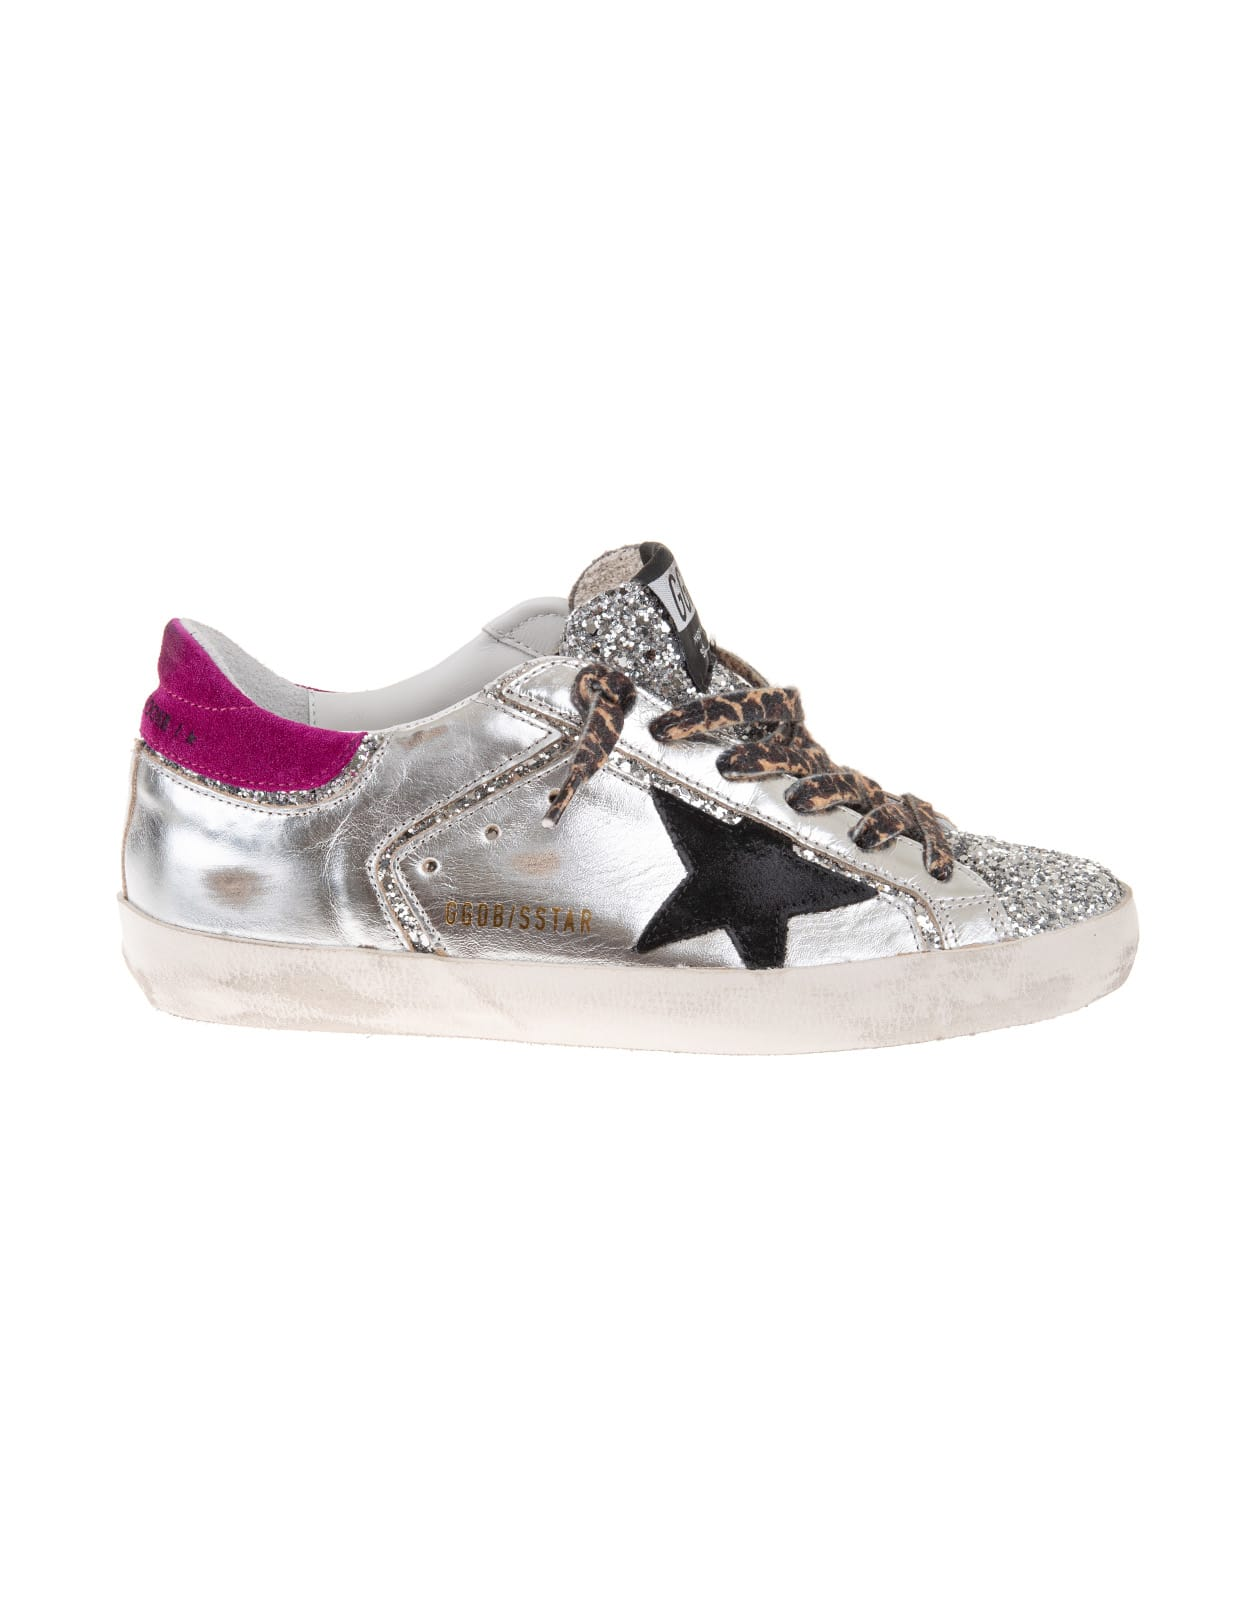 Golden Goose Woman Silver Super-star Sneakers With Glitter And Leopard Laces